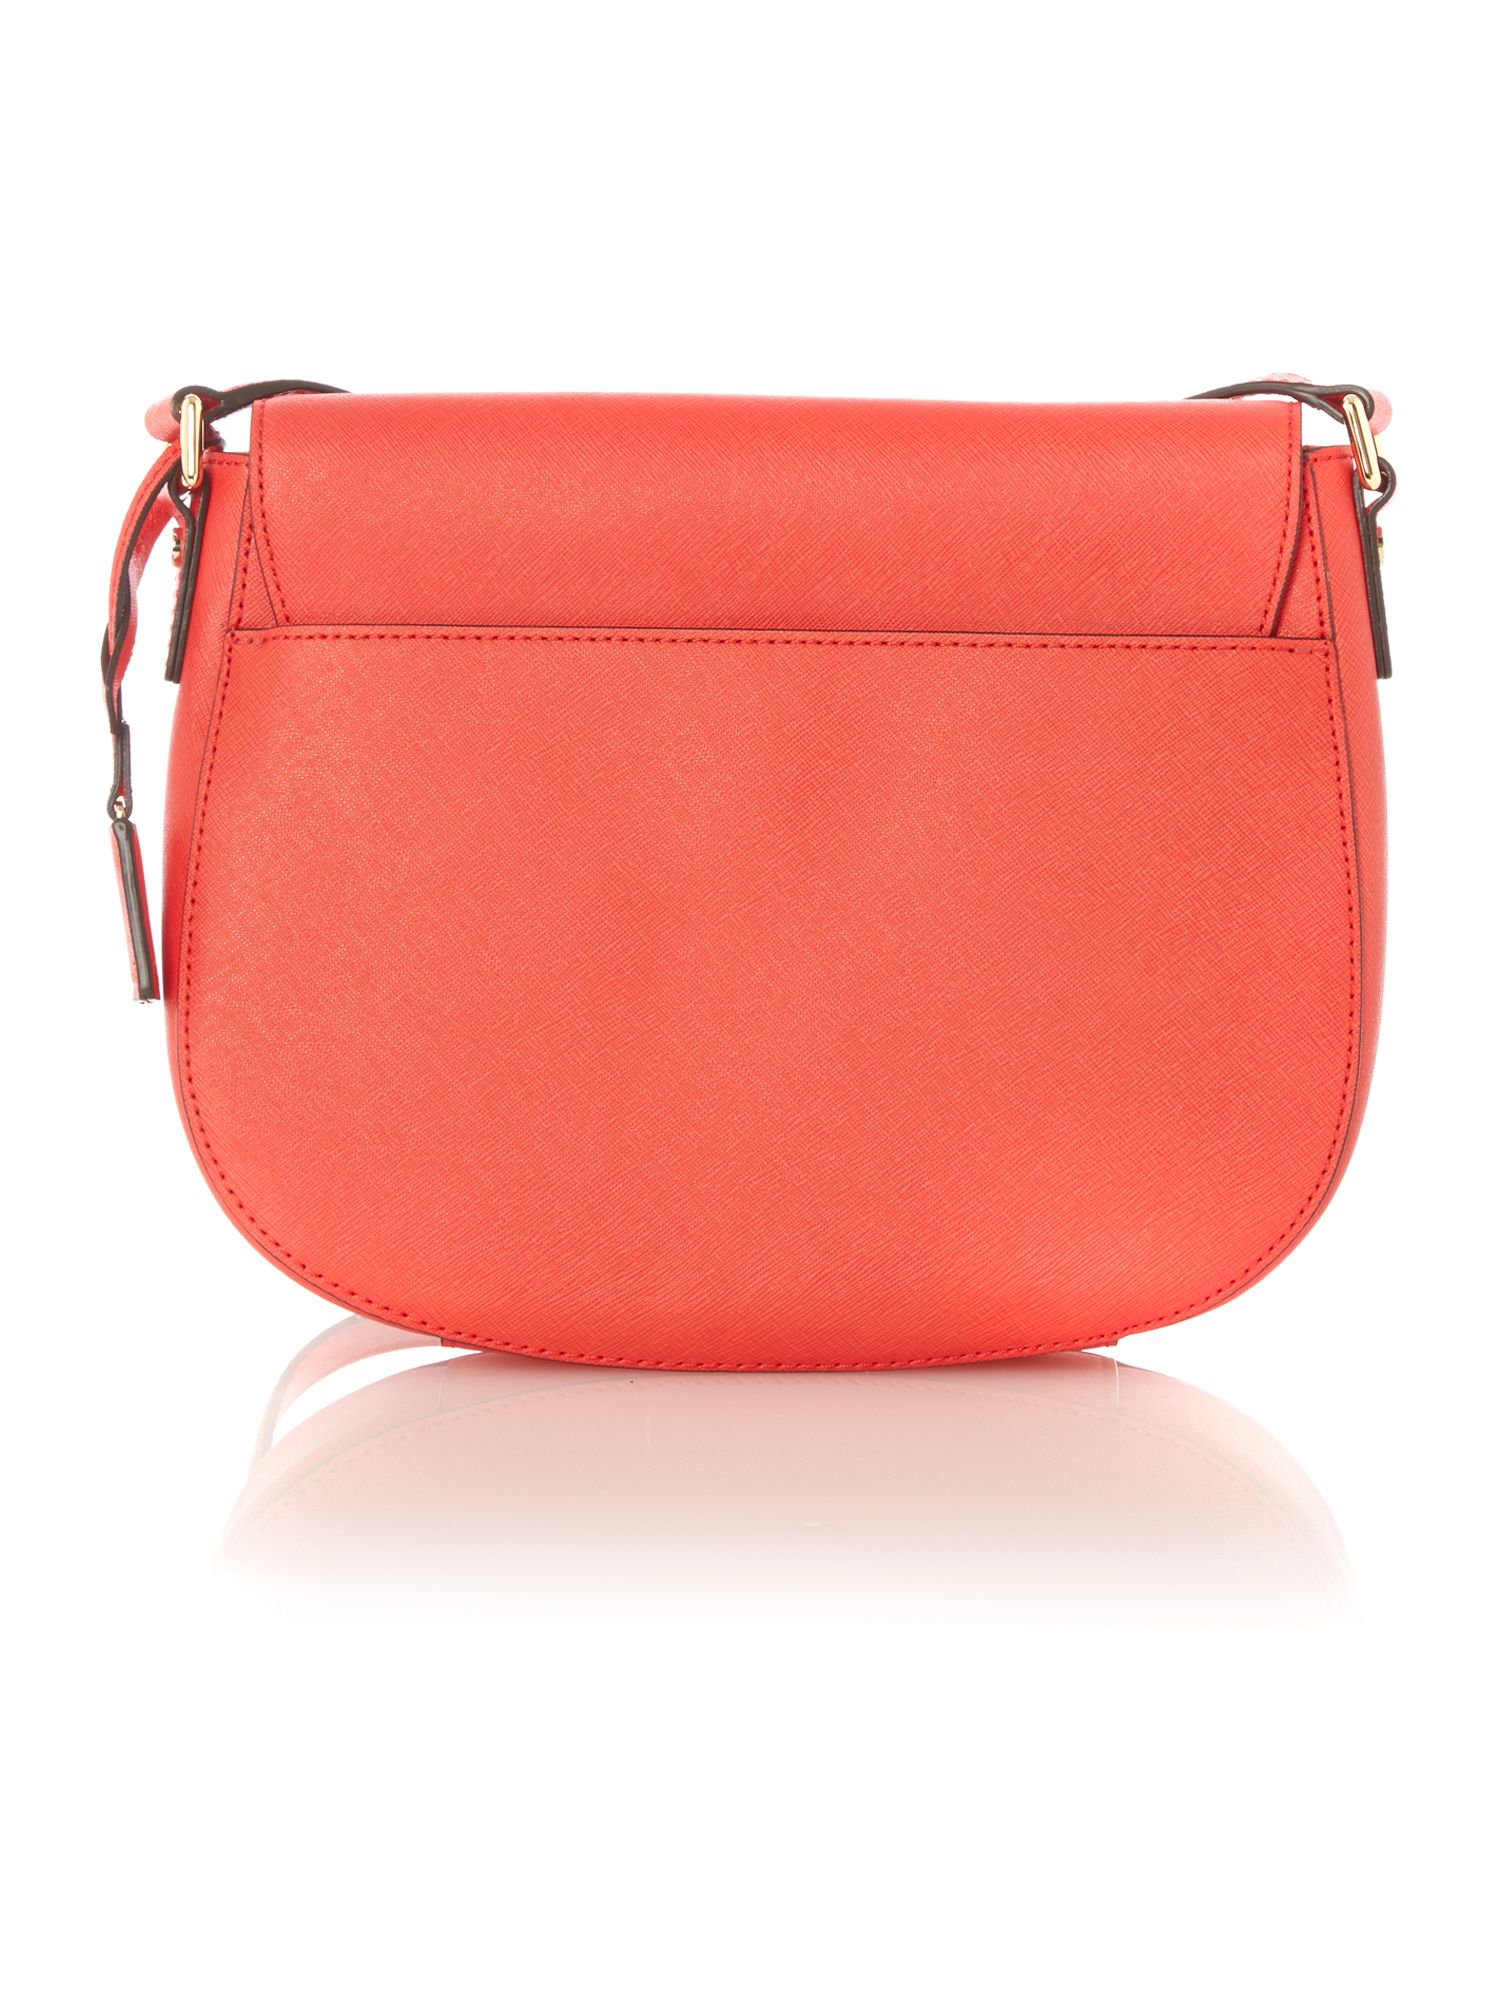 Hamilton red flapover cross body